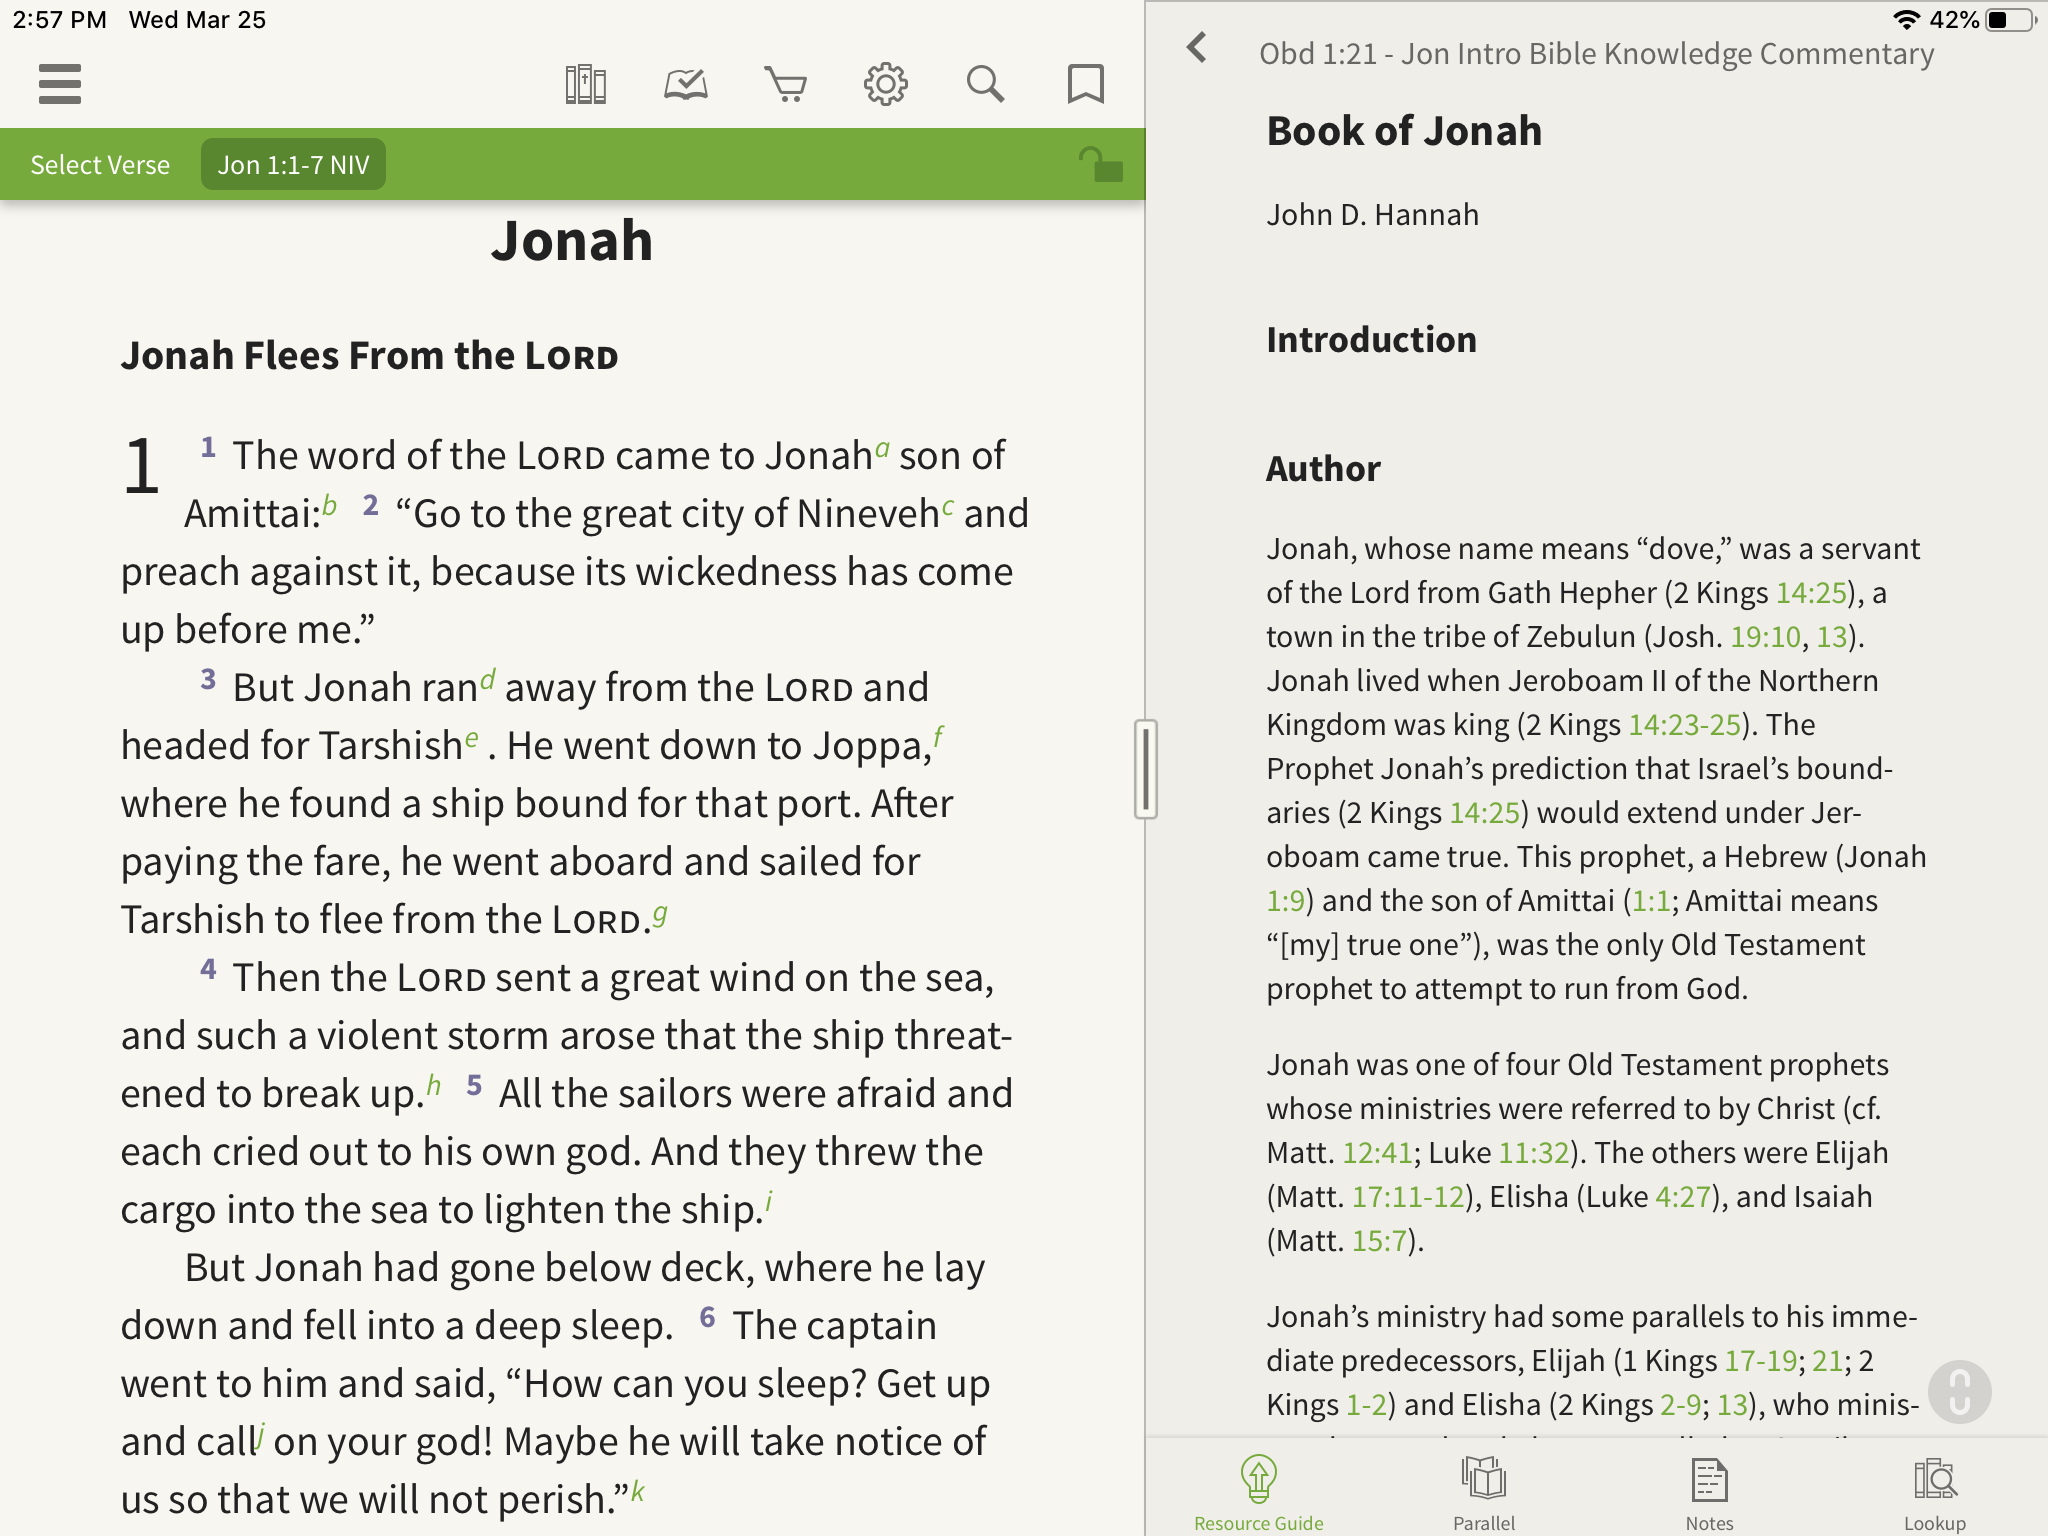 Introduction to the Book of Jonah